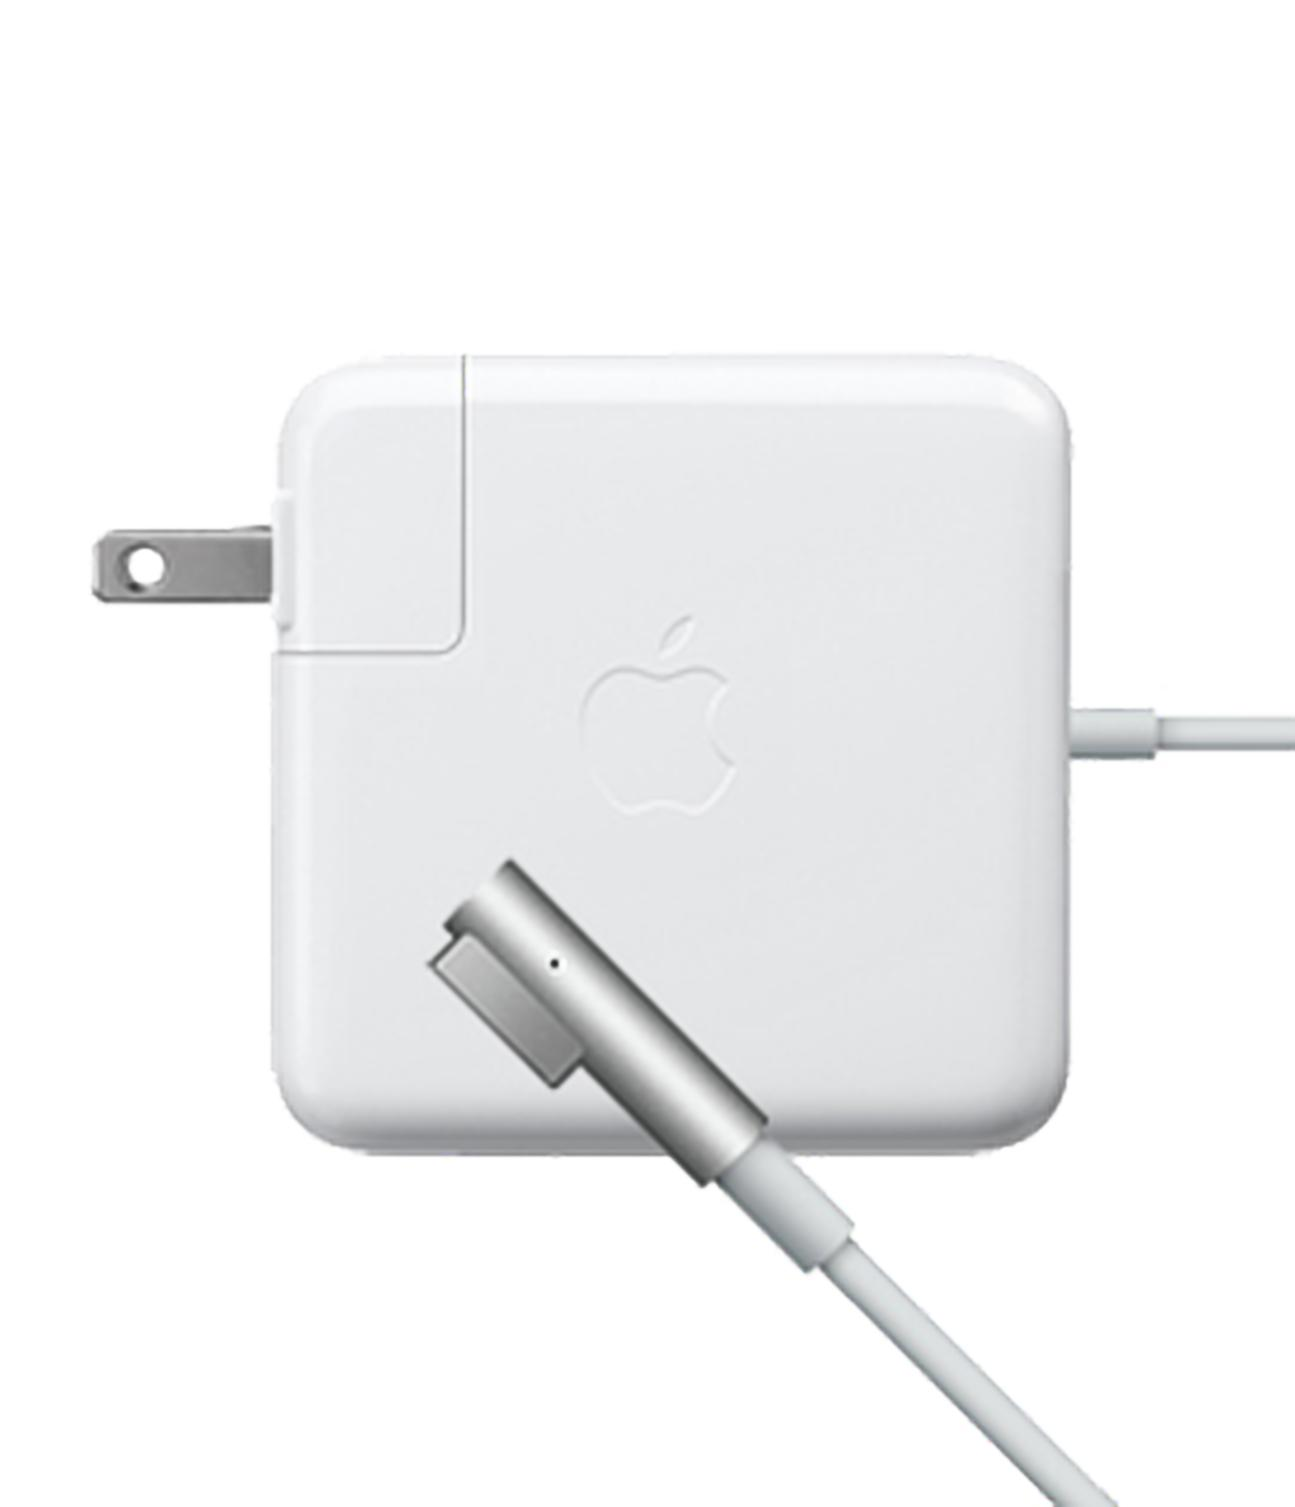 60w Magsafe Power Adapter For Macbook And Macbook Pro 13 Inch Models L-Type Magsafe Charger 60watts By Bkcj.